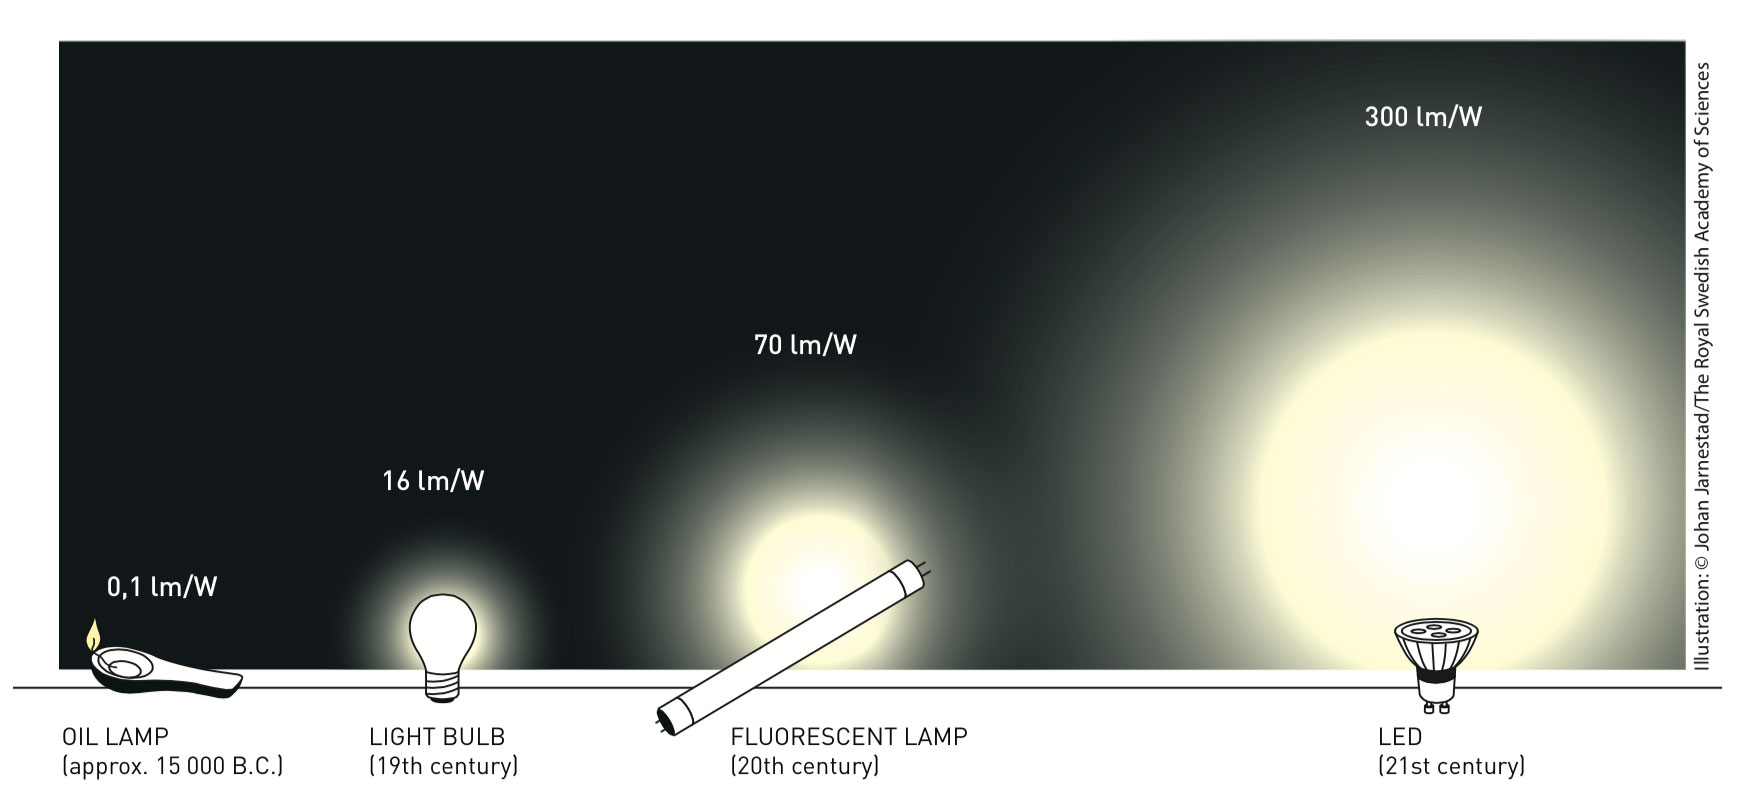 LED lights produce more lumens of light per watt of electrical power than earlier forms of light.